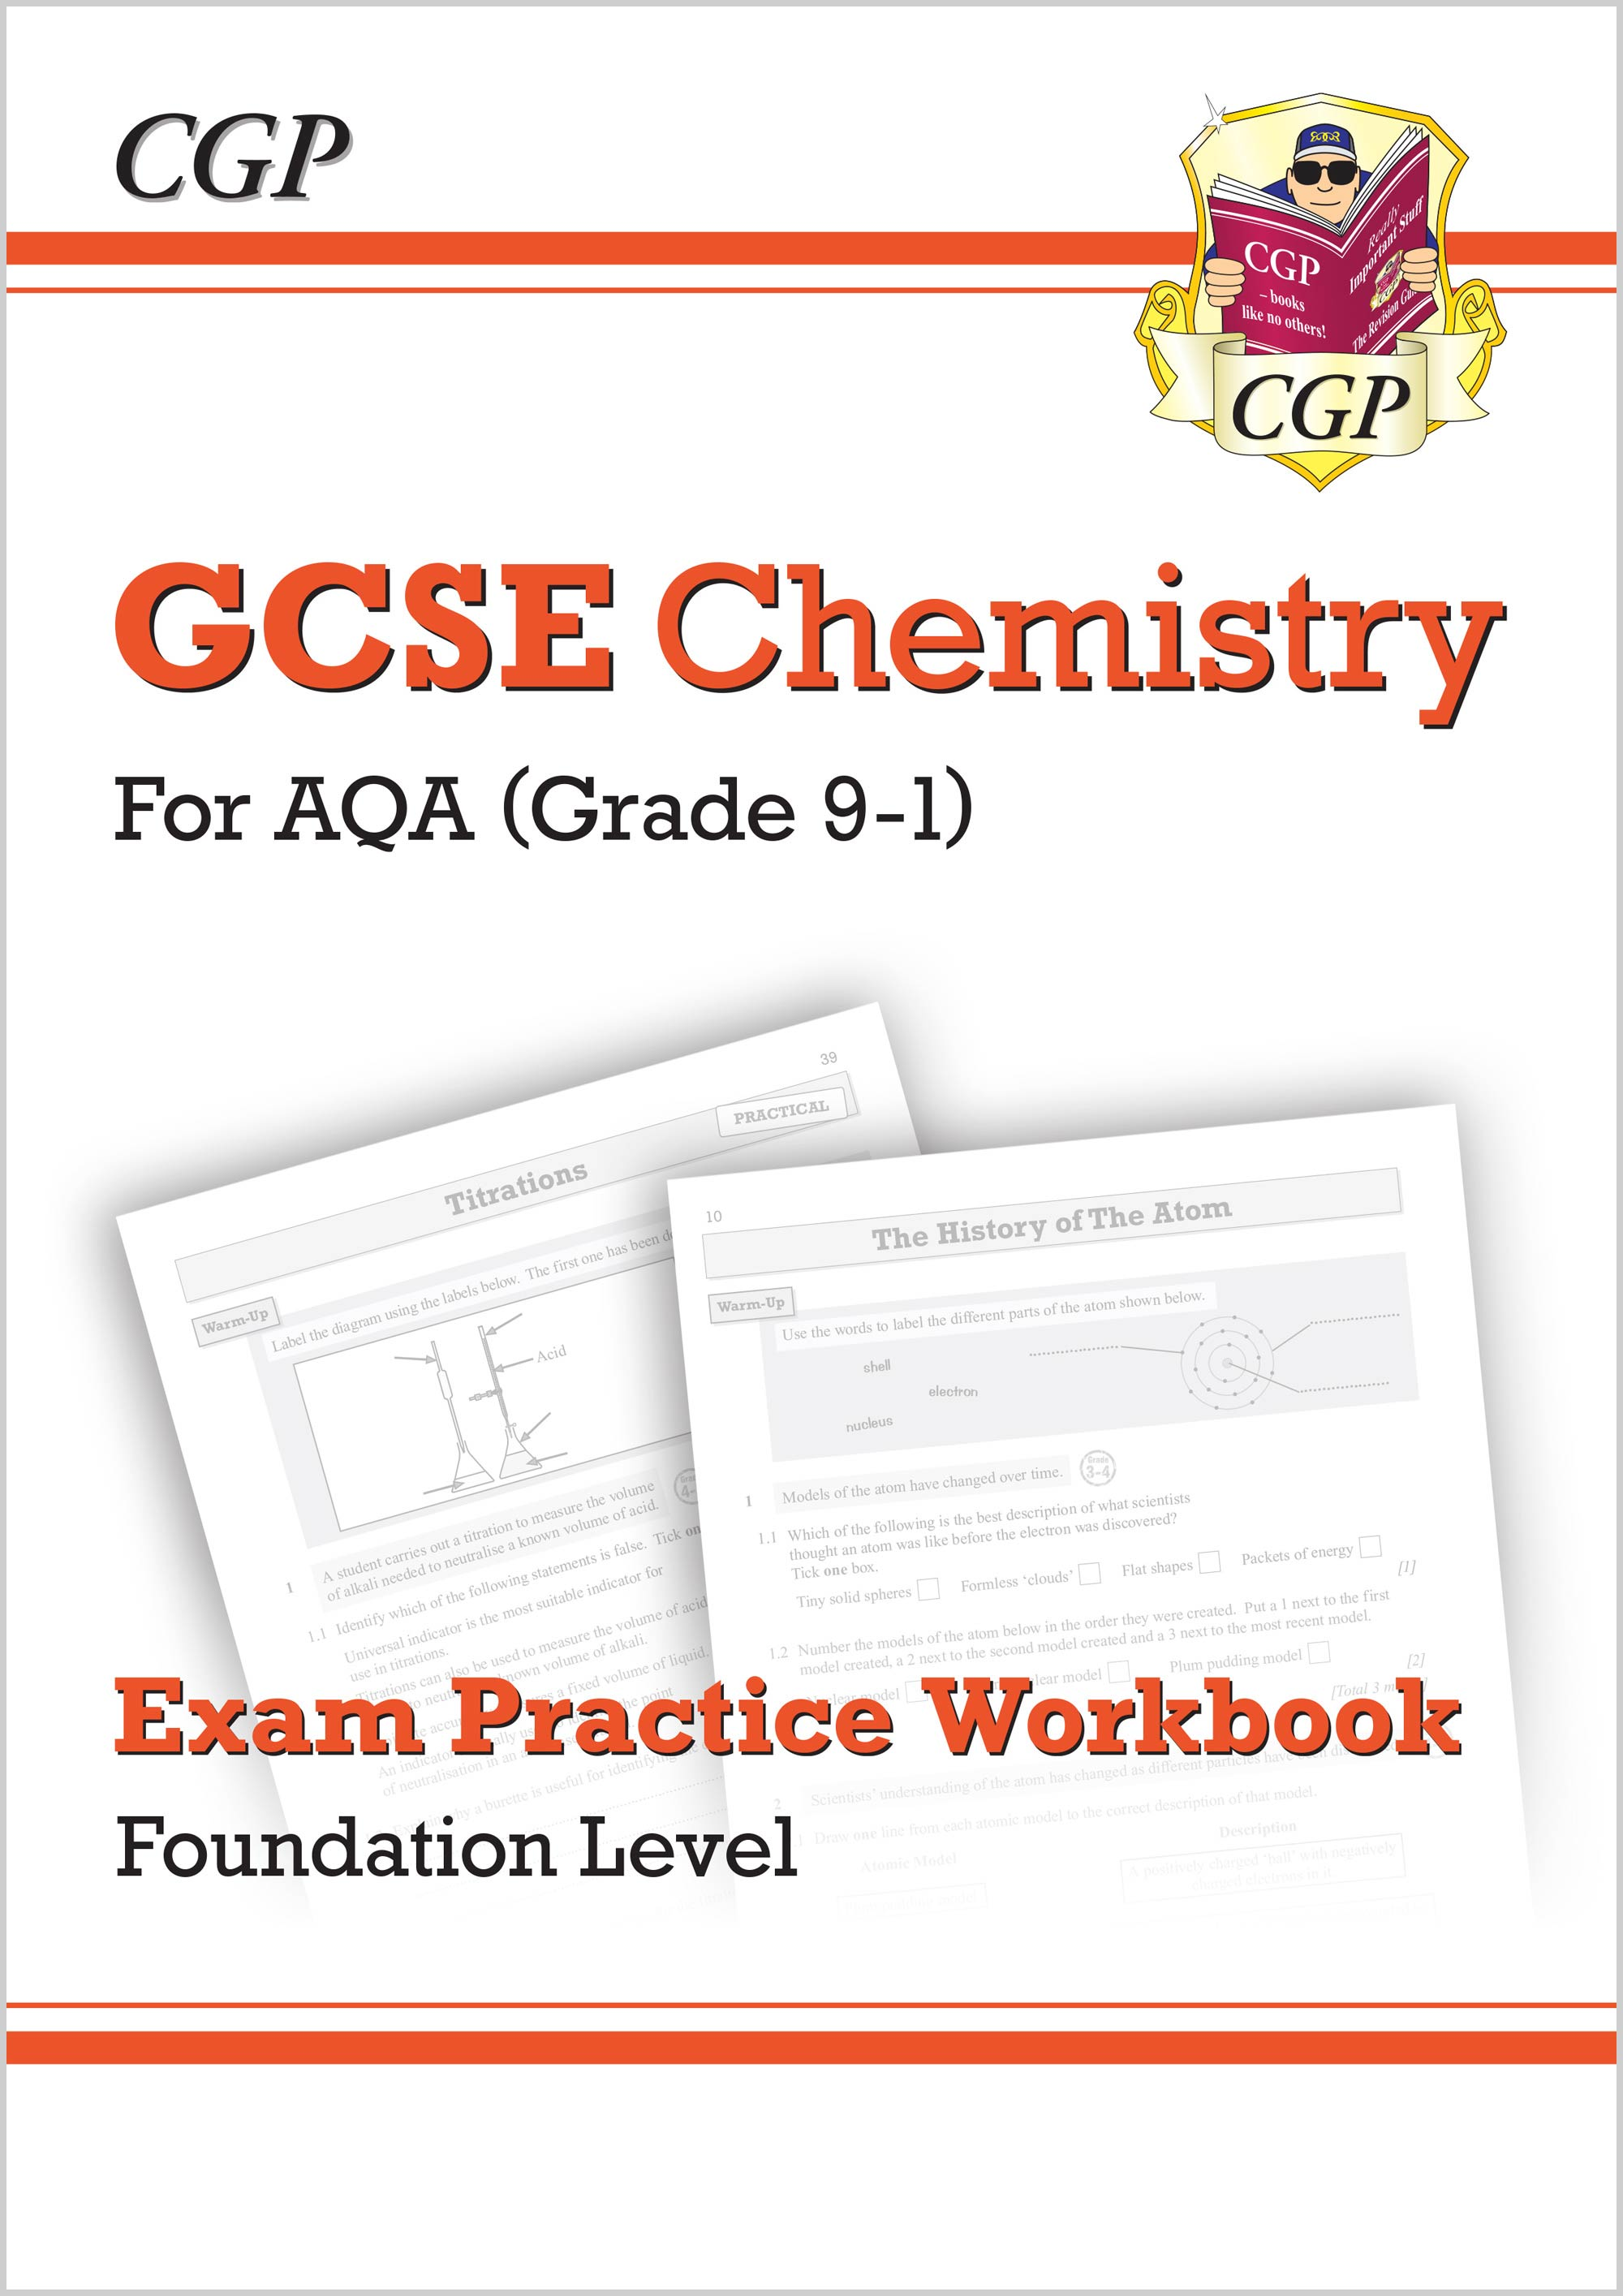 CAFQ41 - Grade 9-1 GCSE Chemistry: AQA Exam Practice Workbook - Foundation